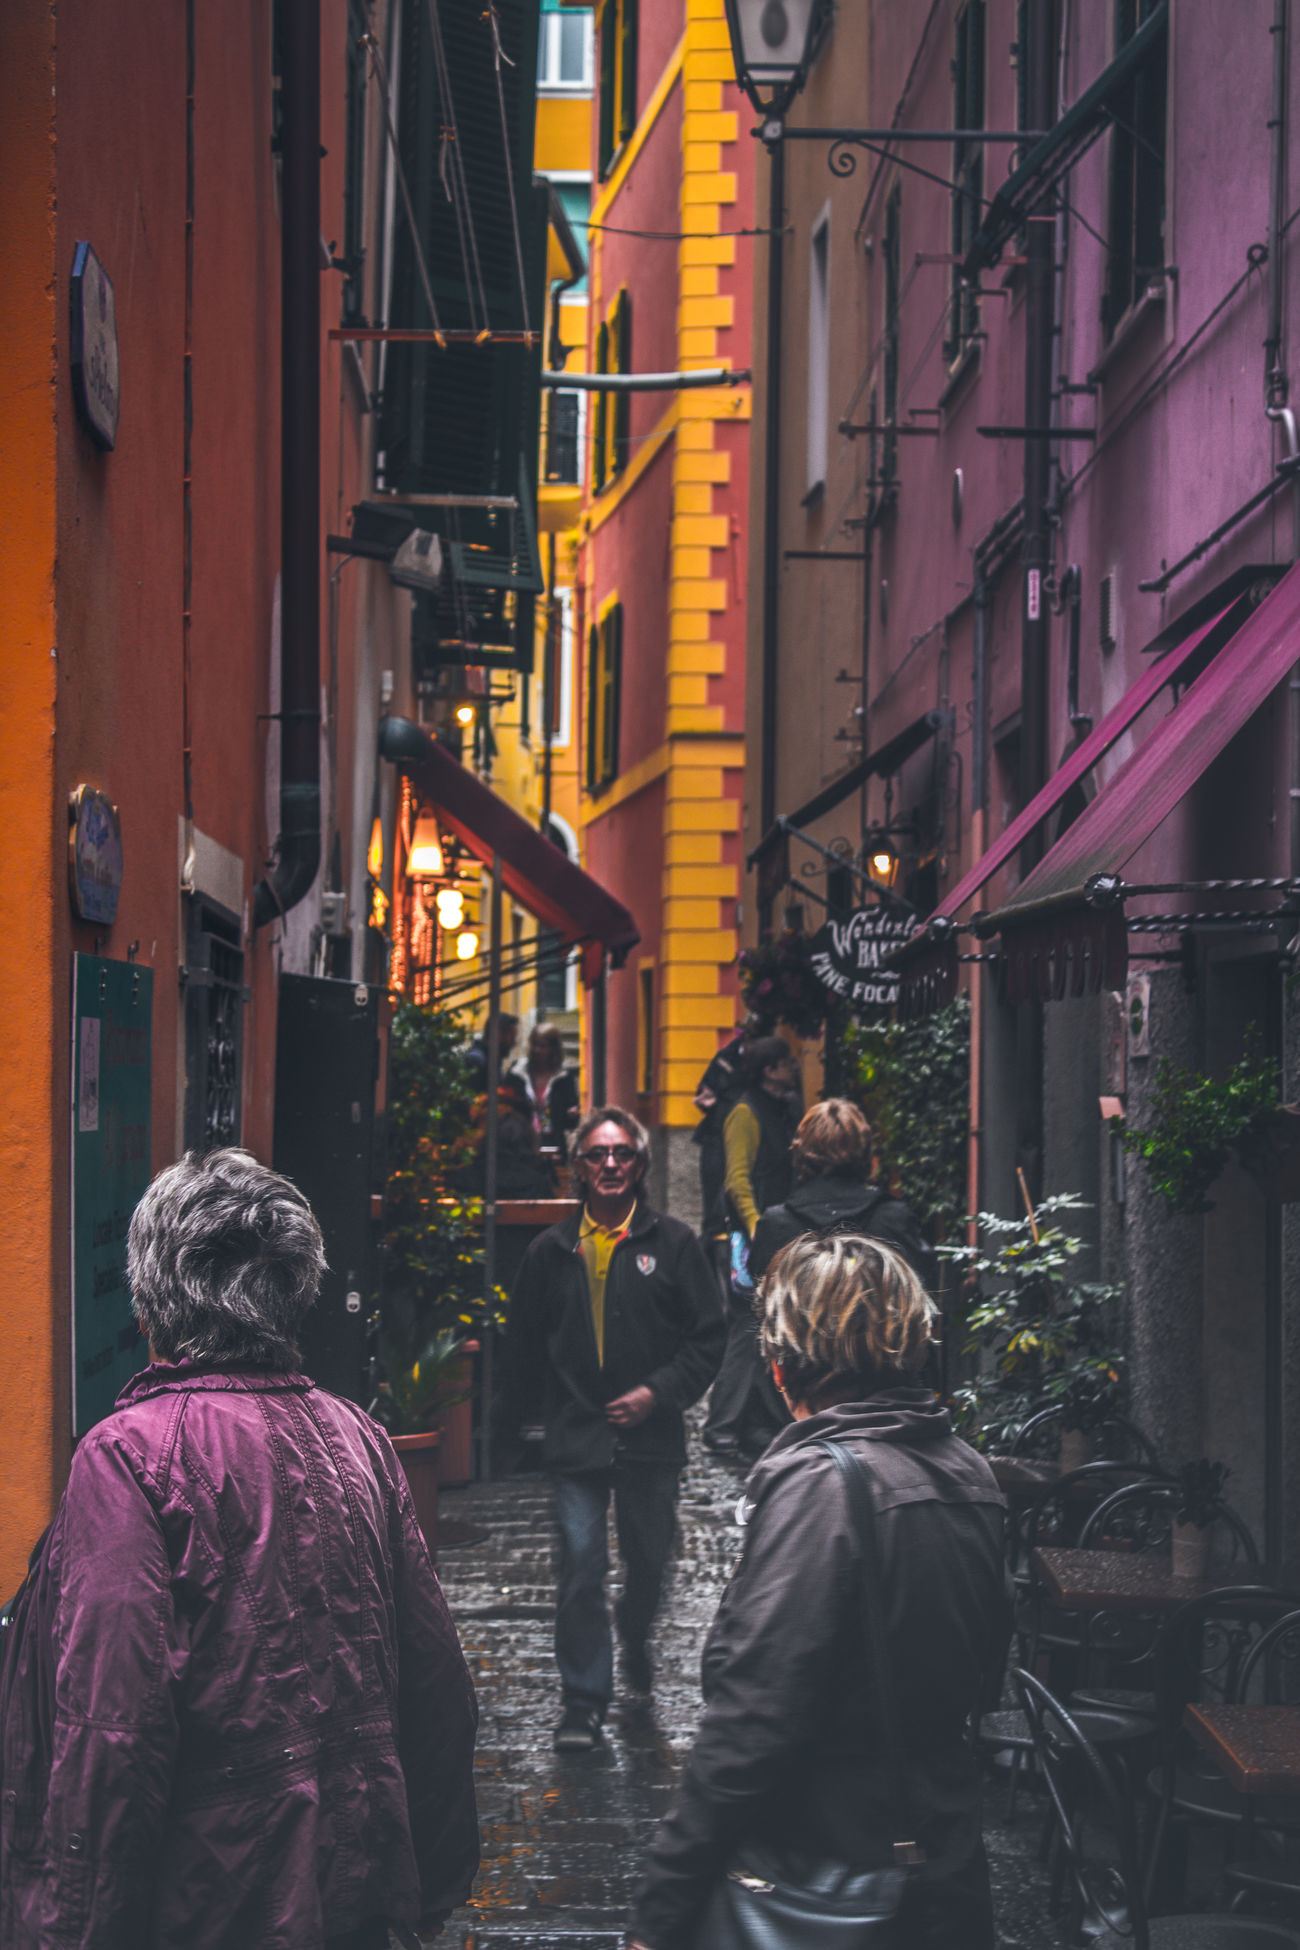 Travel Destinations Outdoors Day People City Architecture EyeEm Real People EyeEm Best Shots Italy Love EyeEm Gallery Building Exterior Yellow Cinque Terre